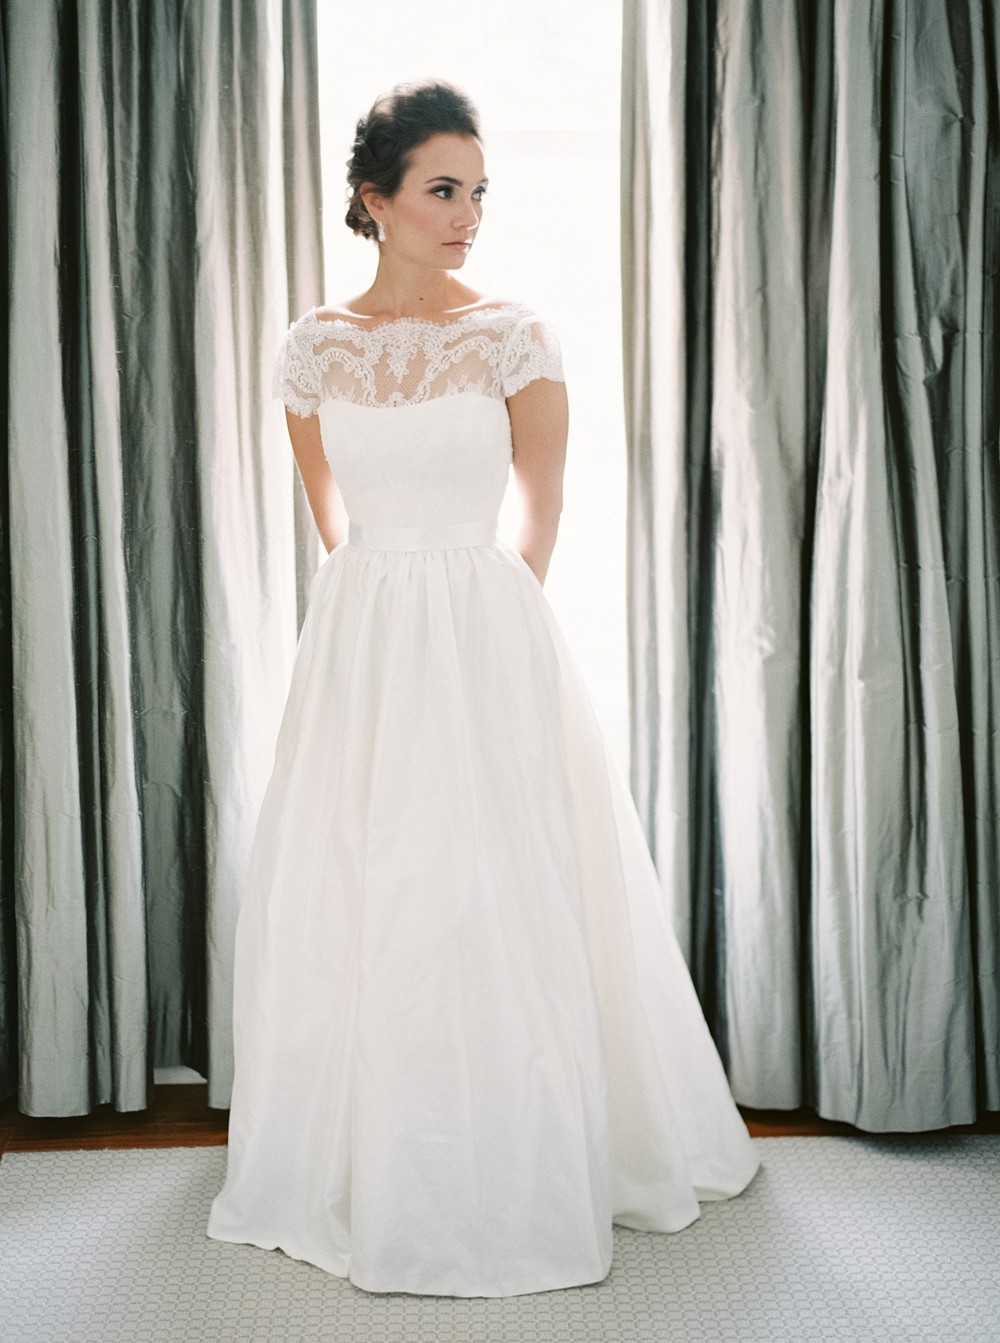 Tara Keely Wedding Gown   Sophisticated Real Wedding in Ontario by When He Found Her on Wedding Sparrow